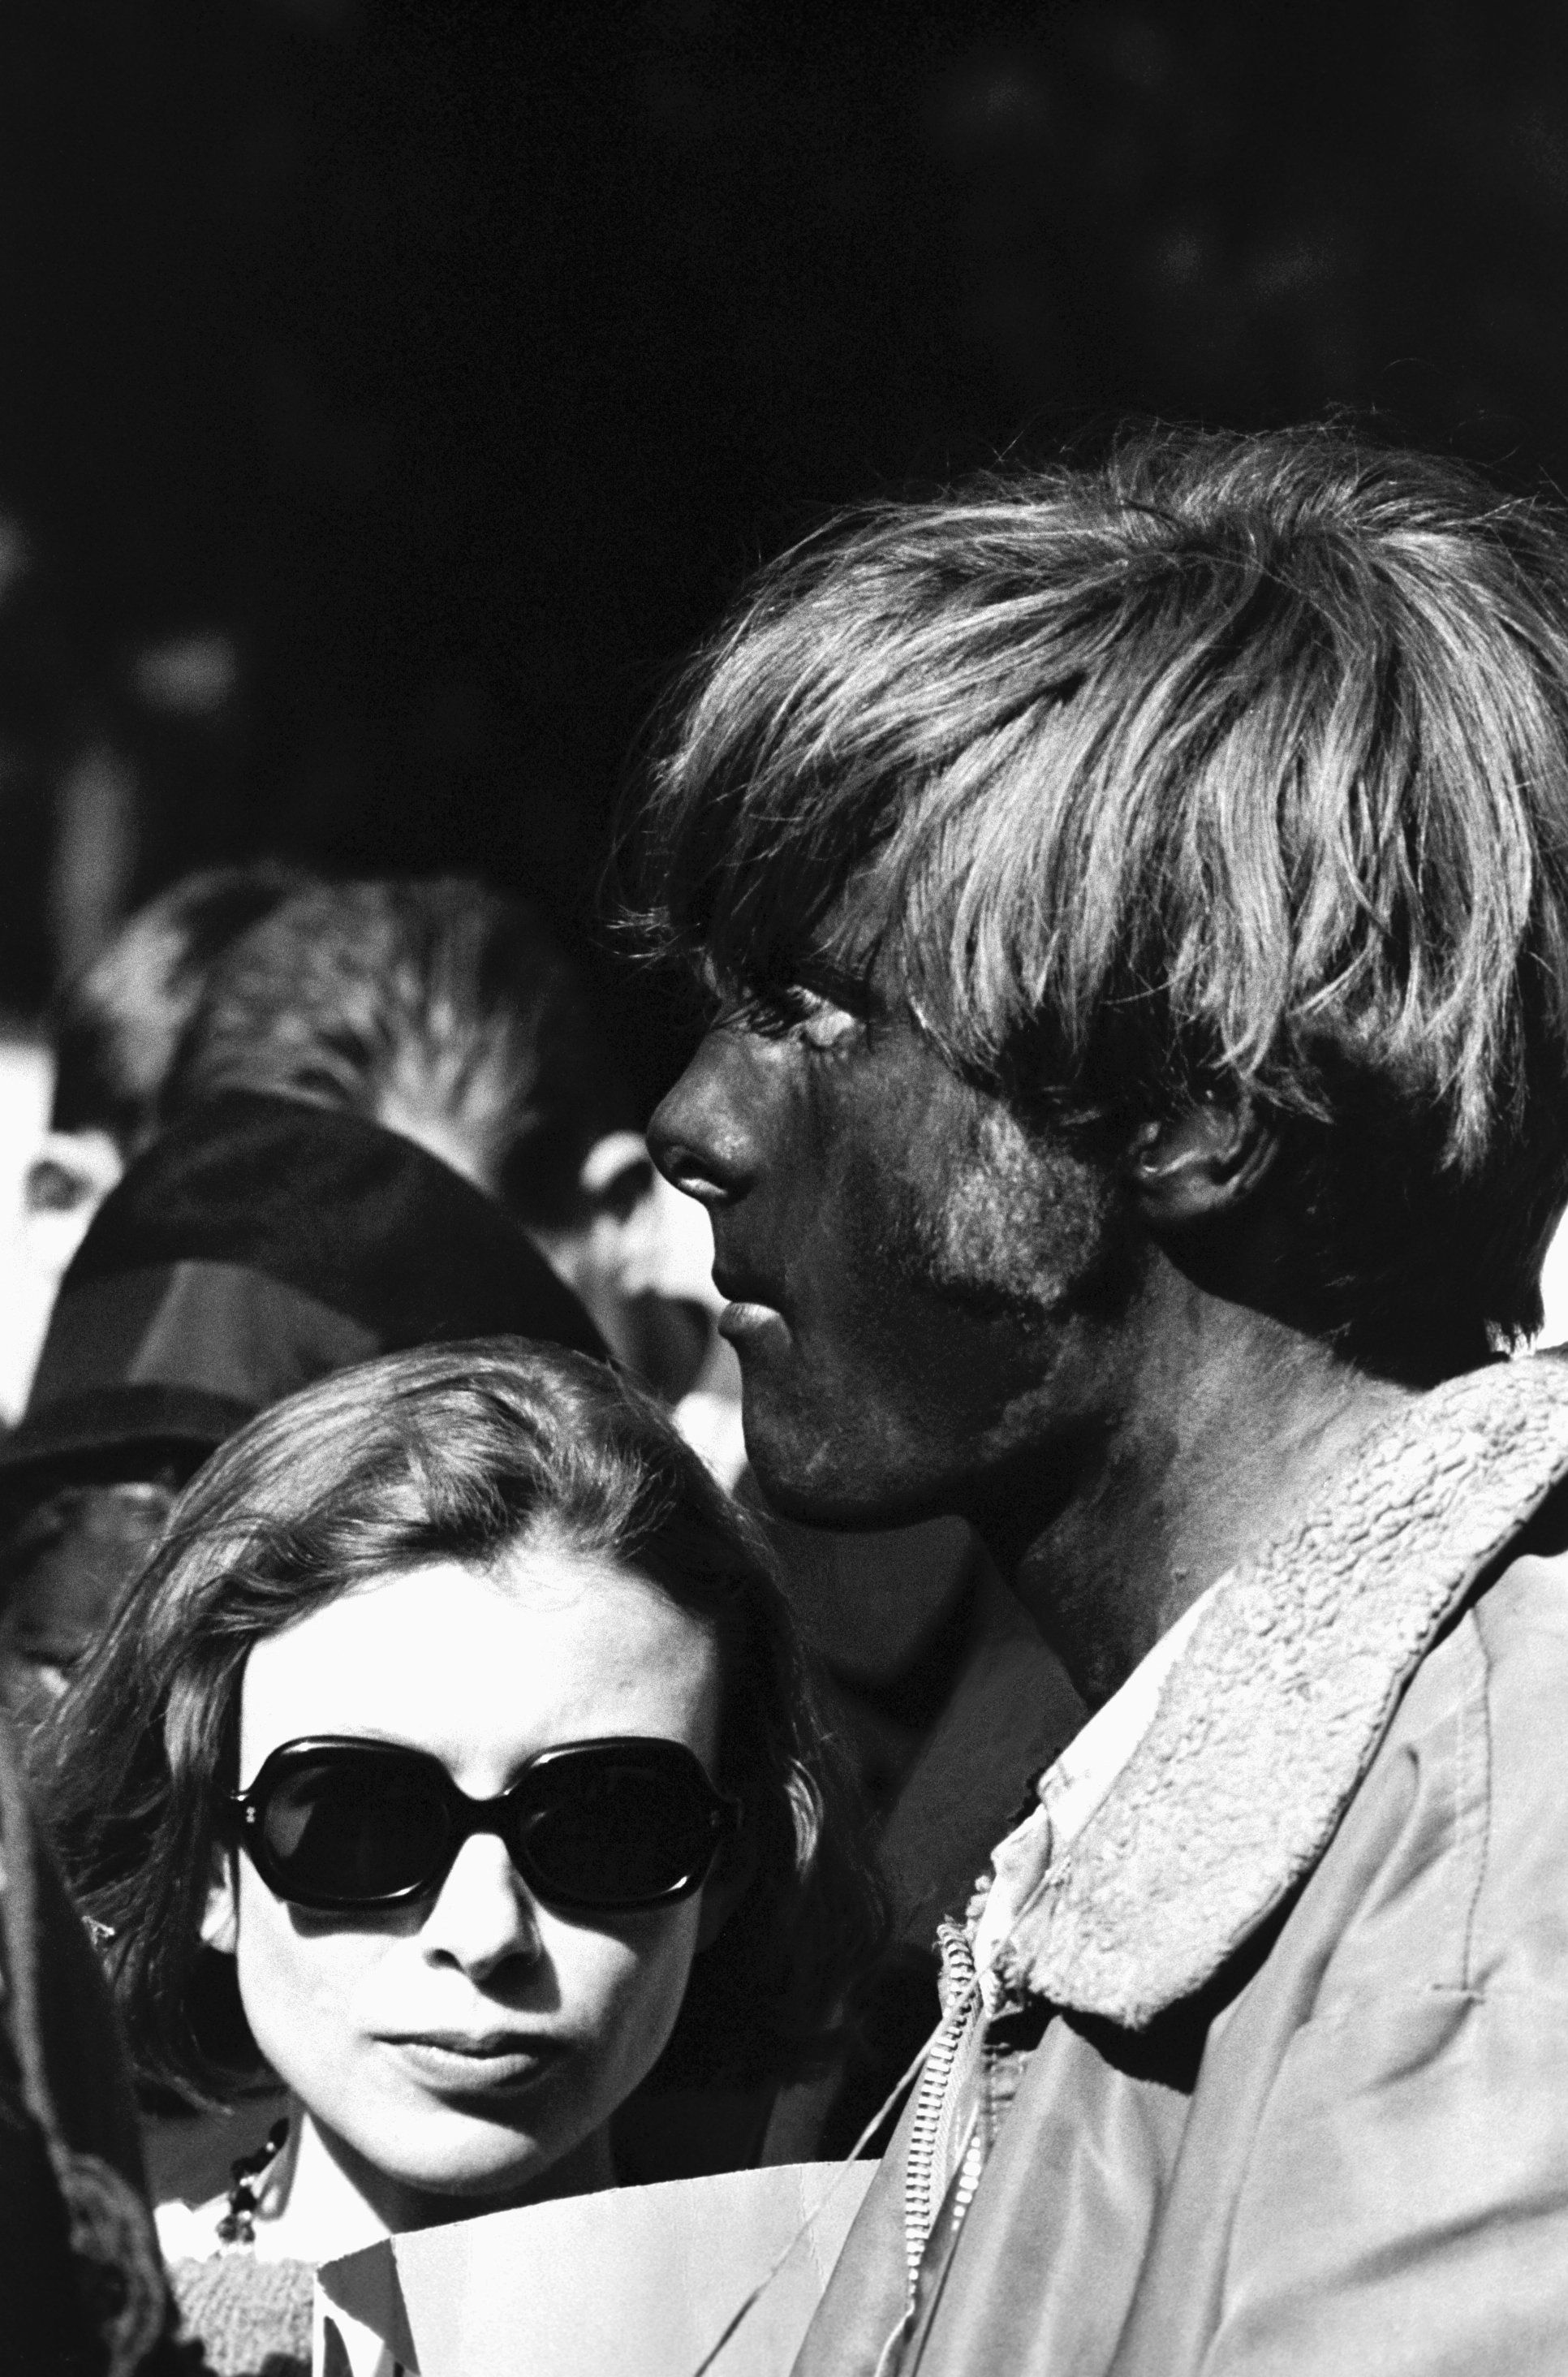 Author Joan Didion stands next to a face-painted hippie at a concert in Golden Gate Park. (Photo by © Ted Streshinsky/CORBIS/Corbis via Getty Images)